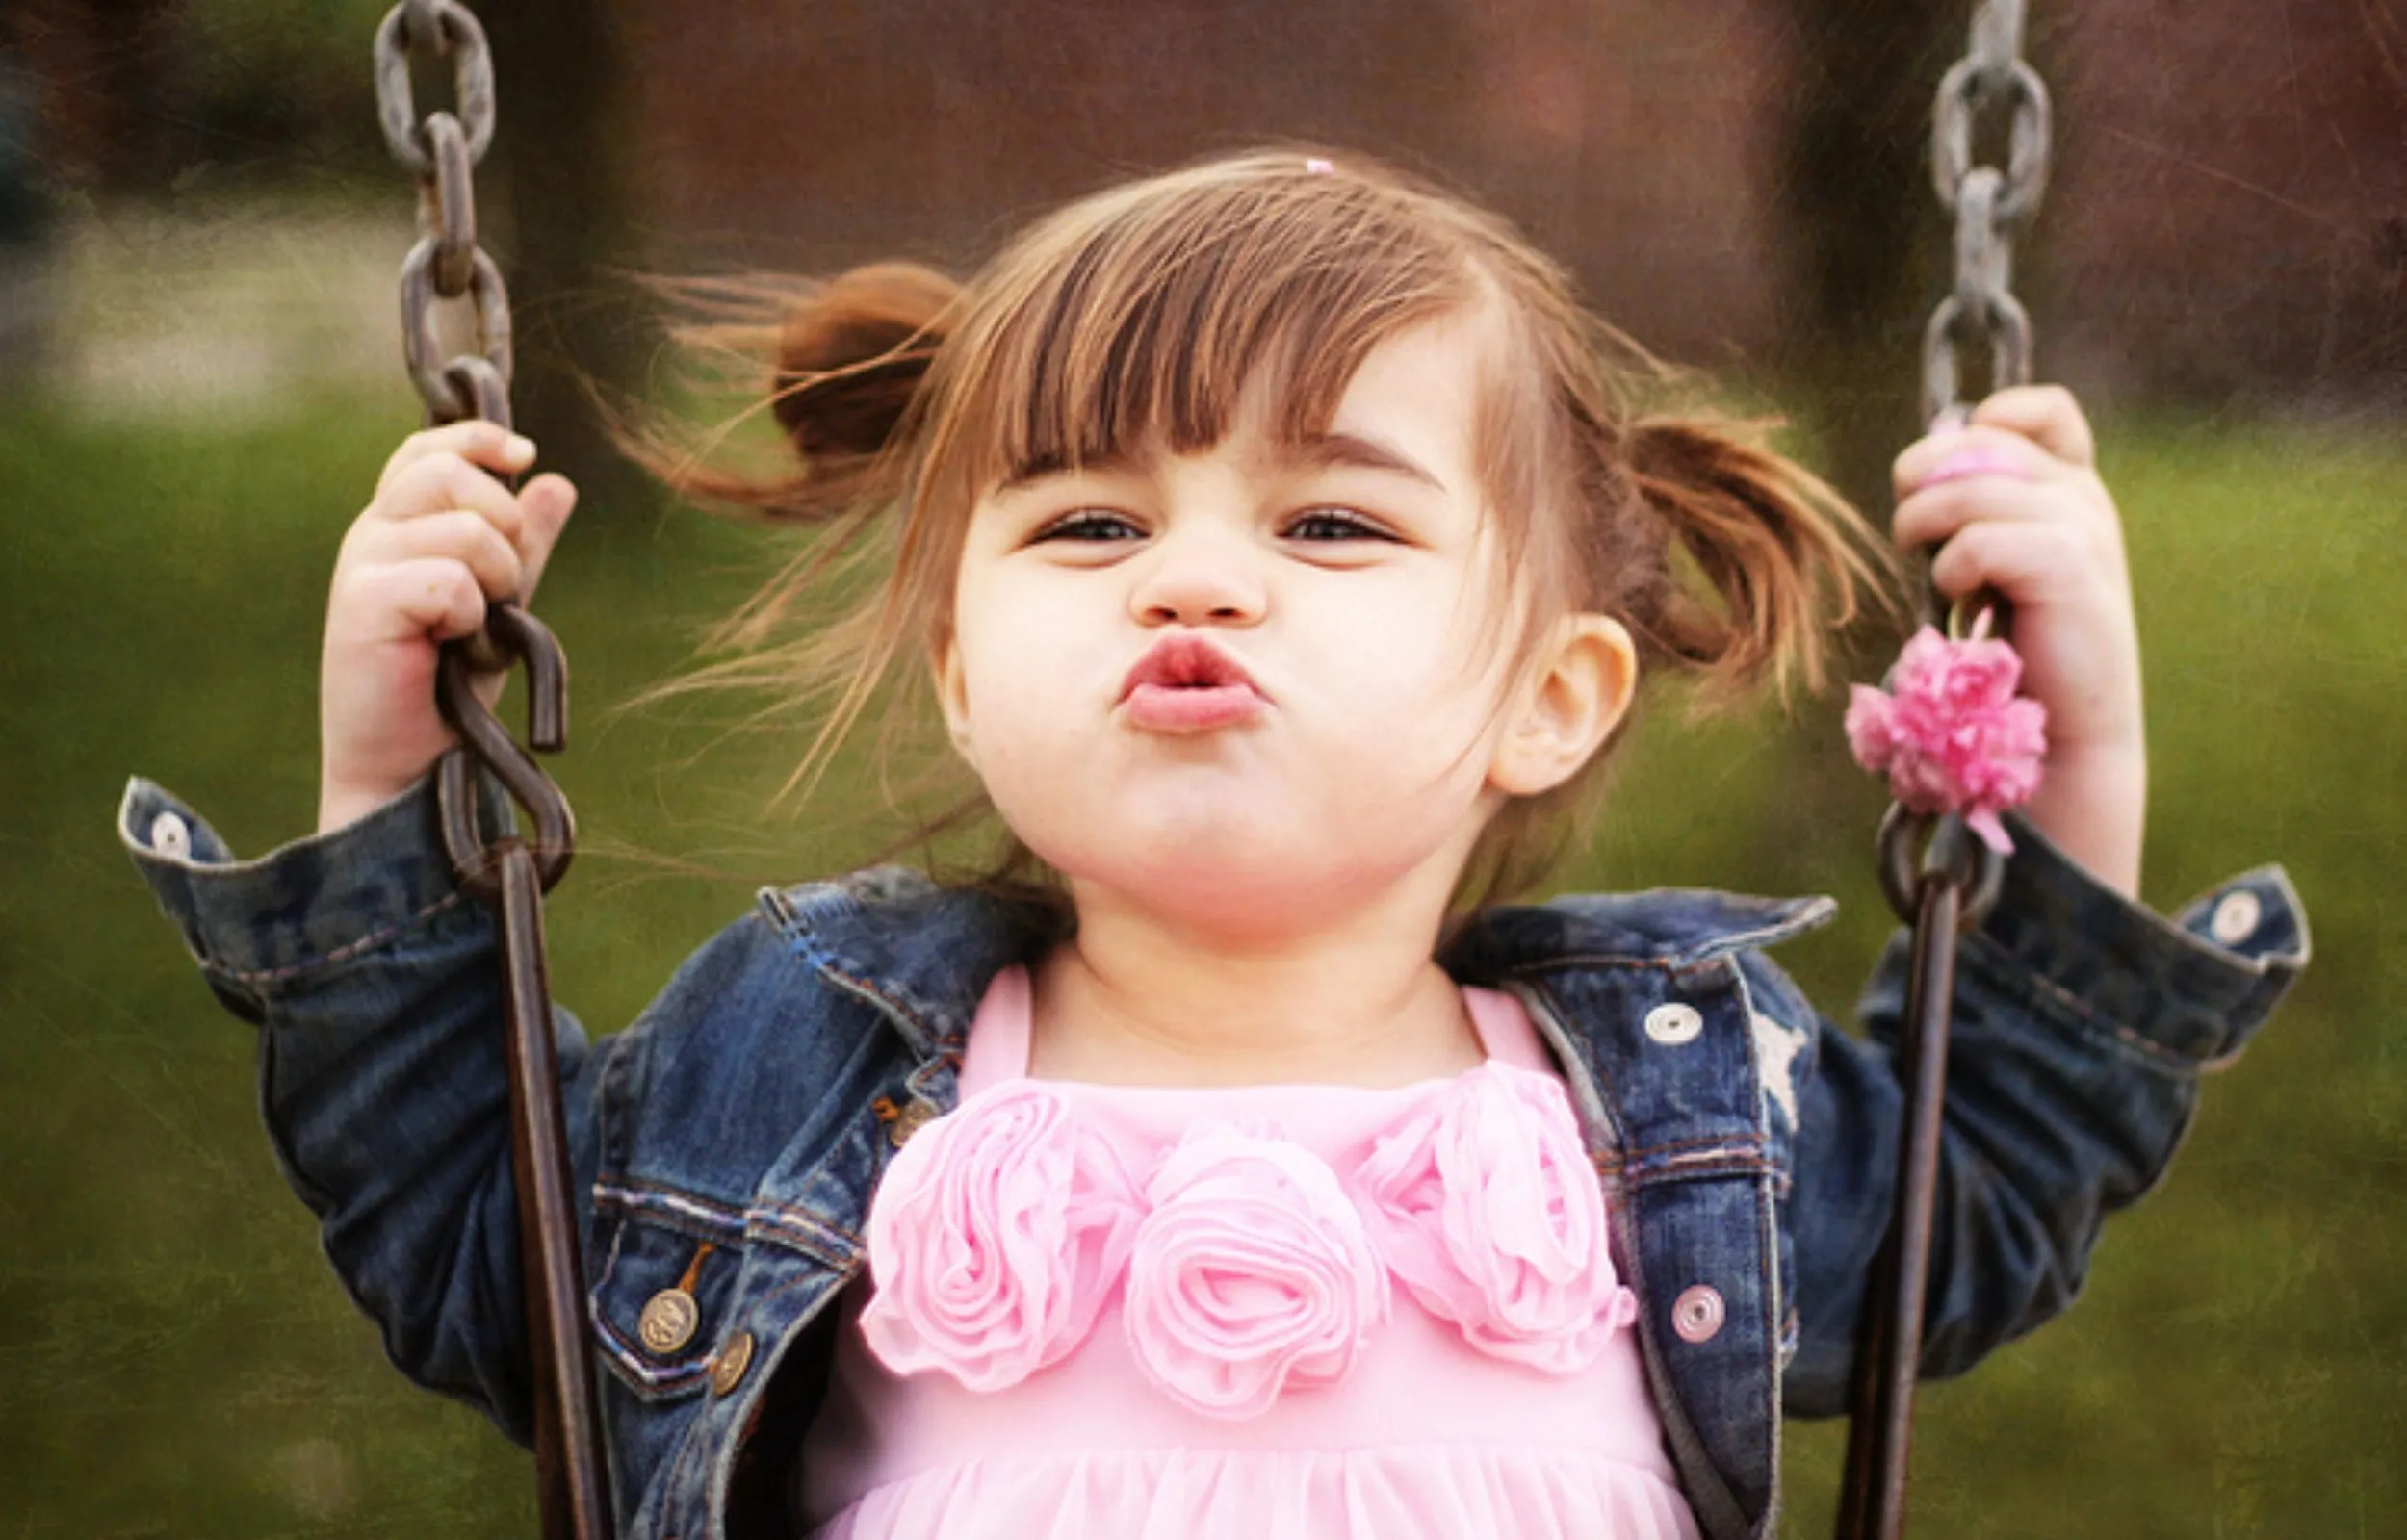 25 Baby Girl Names That Pack A Punch With Fewer Than 5 Letters